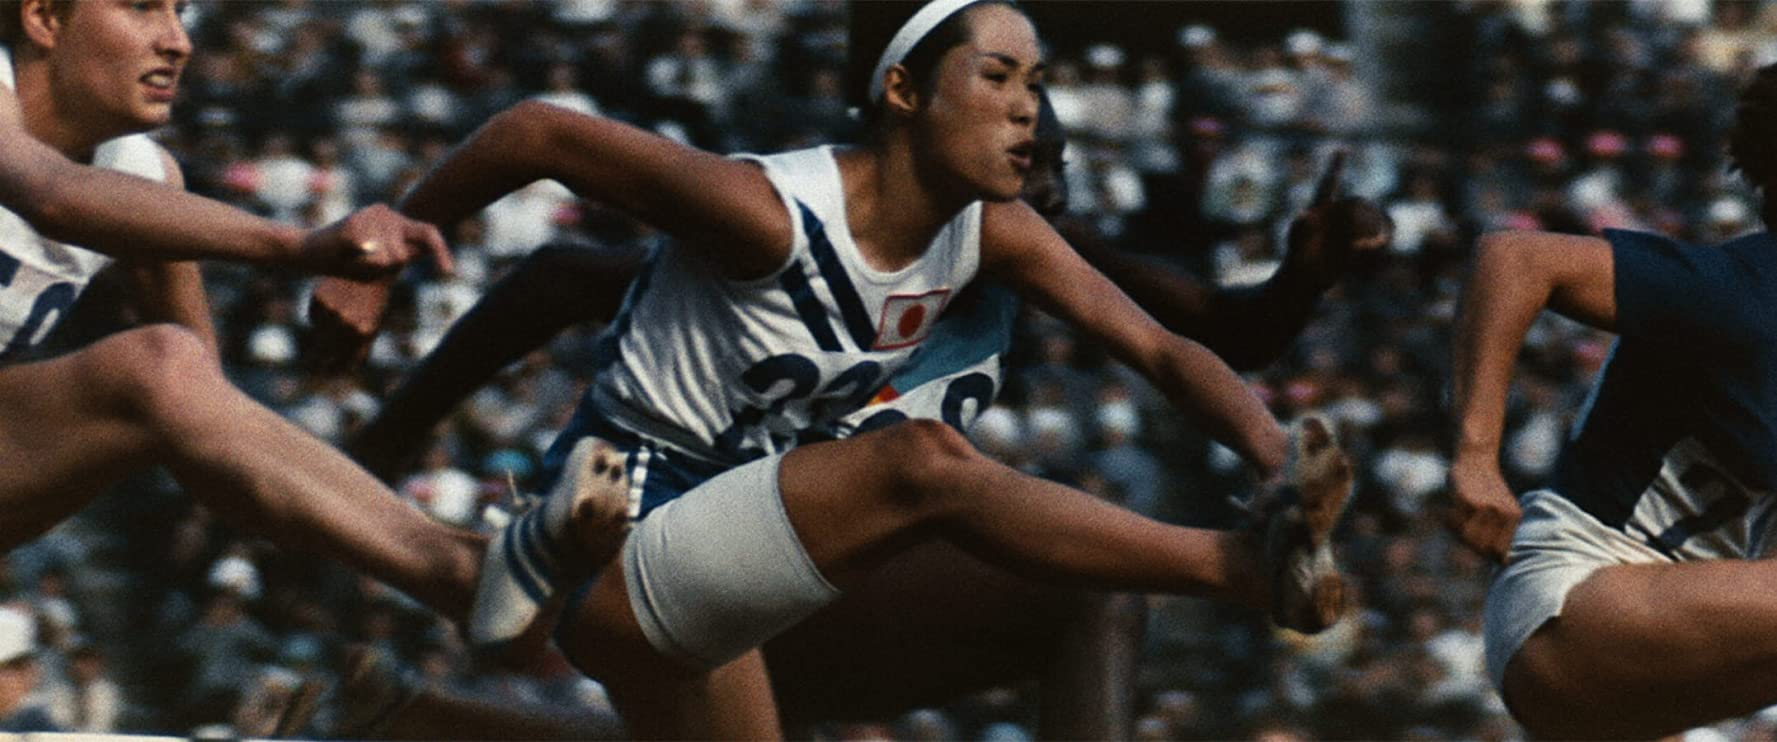 Tokyo Olympiad track and field